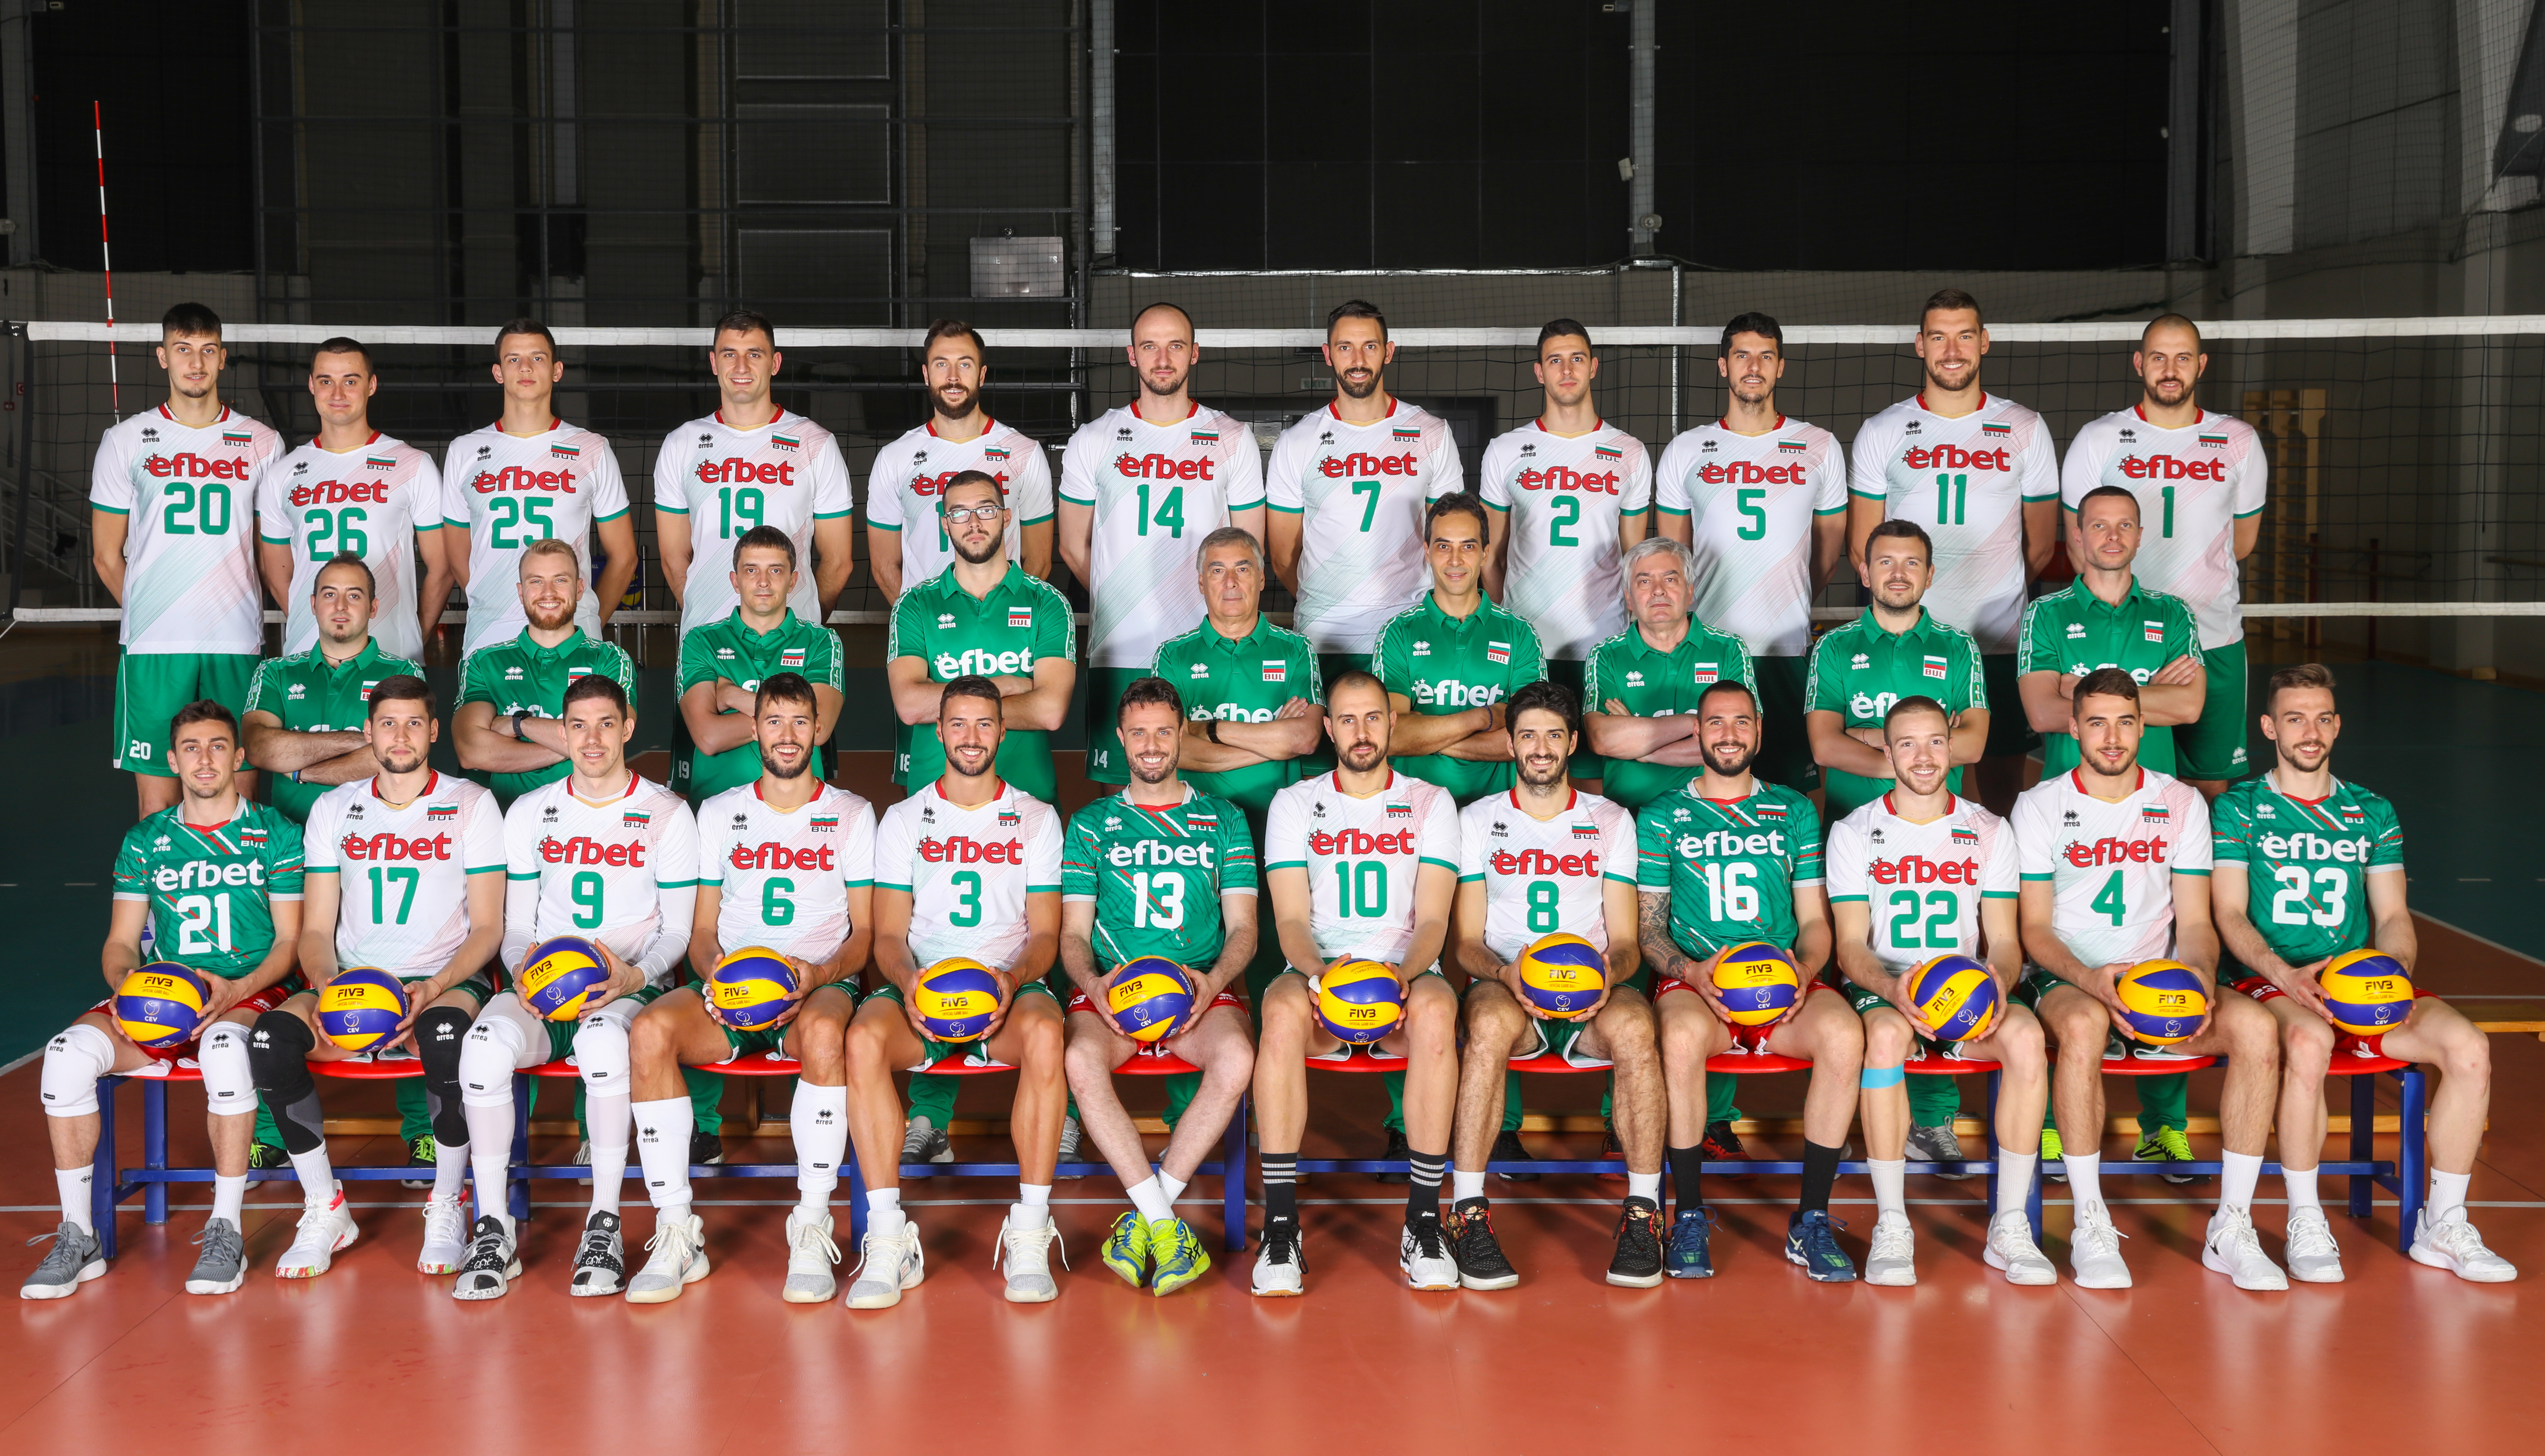 Fivb Volleyball Nations League 2018 Men S Teams Overview Bulgaria Volleyball Nations League 2021